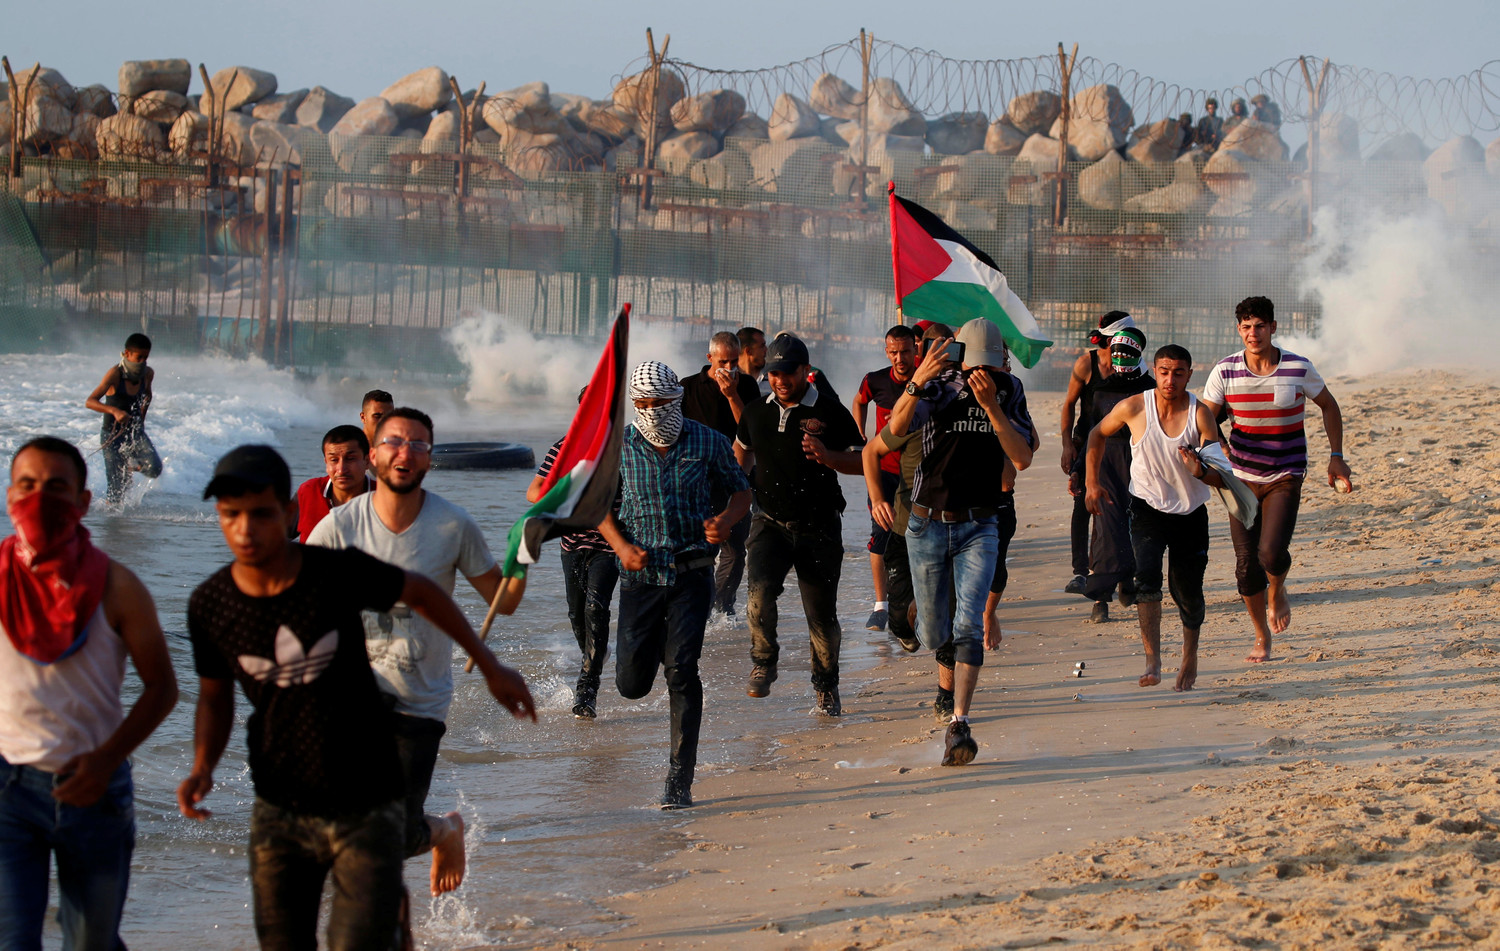 Palestinians run for cover from tear gas fired by Israeli troops during a Sept. 10 protest along a beach in the Gaza Strip. The U.S. budgetary cuts to humanitarian aid institutions providing assistance to Palestinians in Gaza and the West Bank could lead to long-term disastrous consequences, said aid workers in the region.